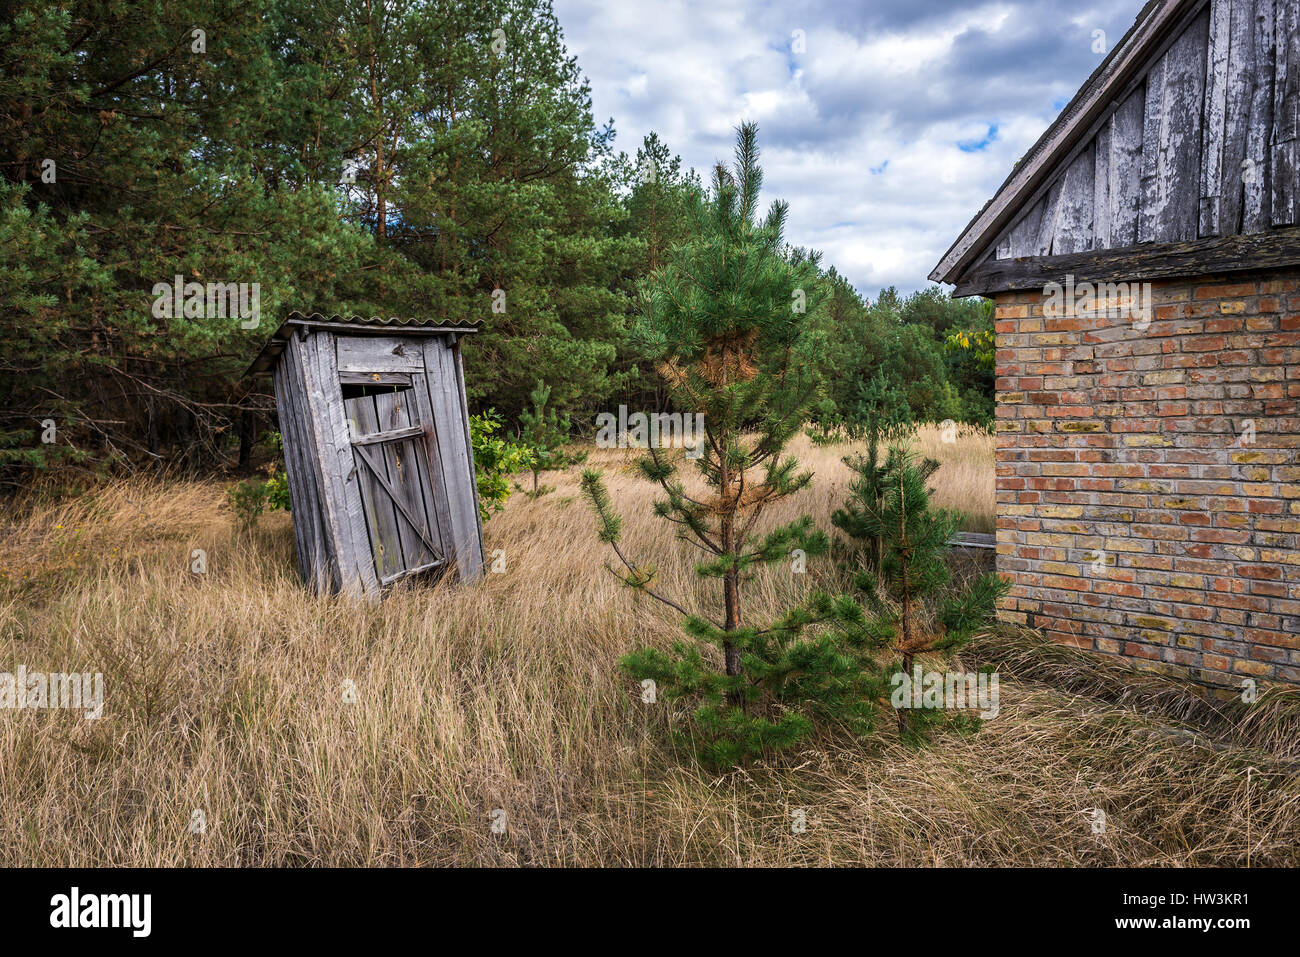 Old wooden privy in Mashevo abandoned village of Chernobyl Nuclear Power Plant Zone of Alienation area around nuclear - Stock Image